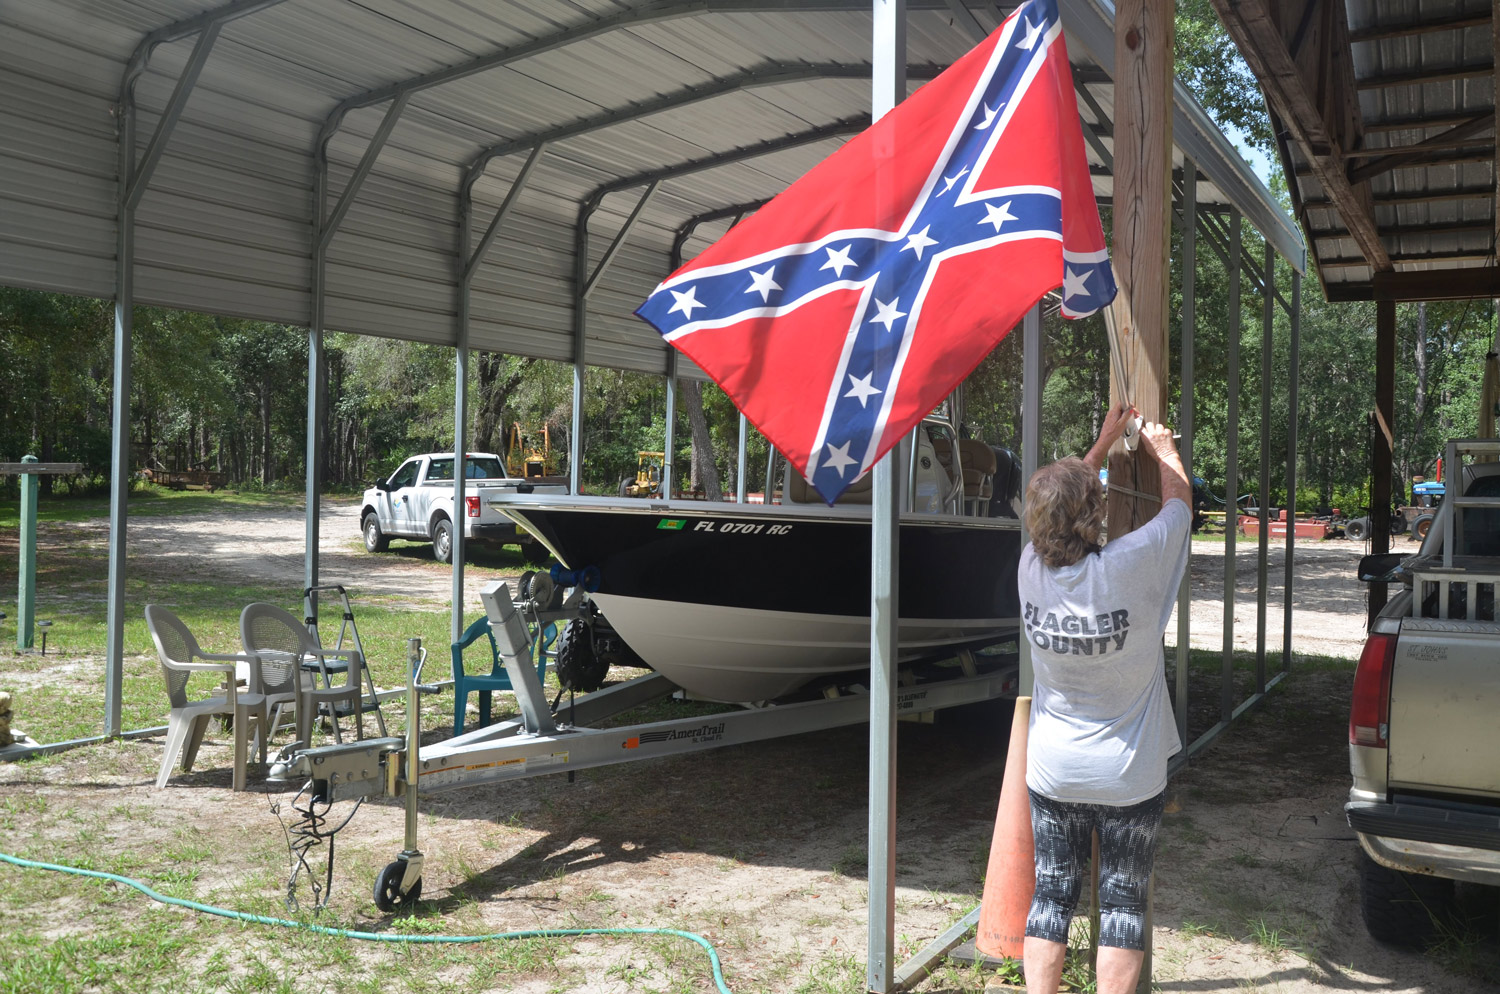 'I don't go around advertising that flag, I don't go around advertising nothing.' Gail Durrance said, taking down the Confederate flag she flew at the Princess Place Preserve, against a 'barn' used by county employees for their park vehicles and equipment. (© FlaglerLive)